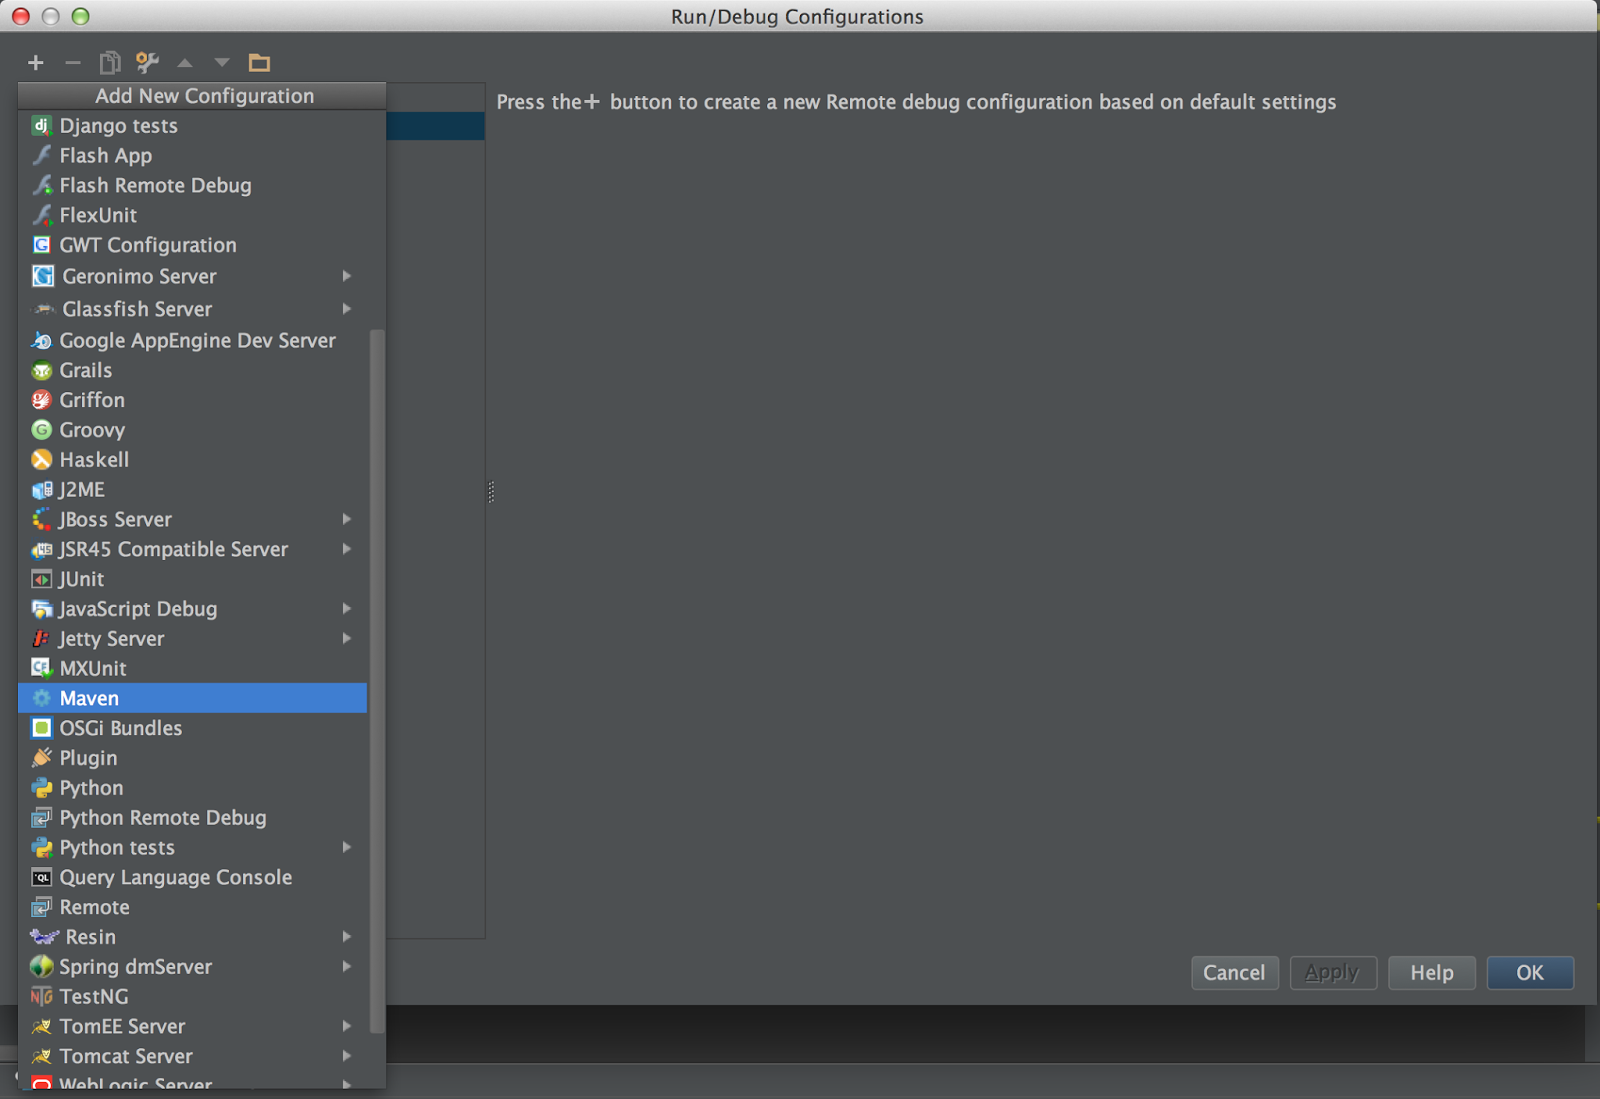 intellij how to run a maven project